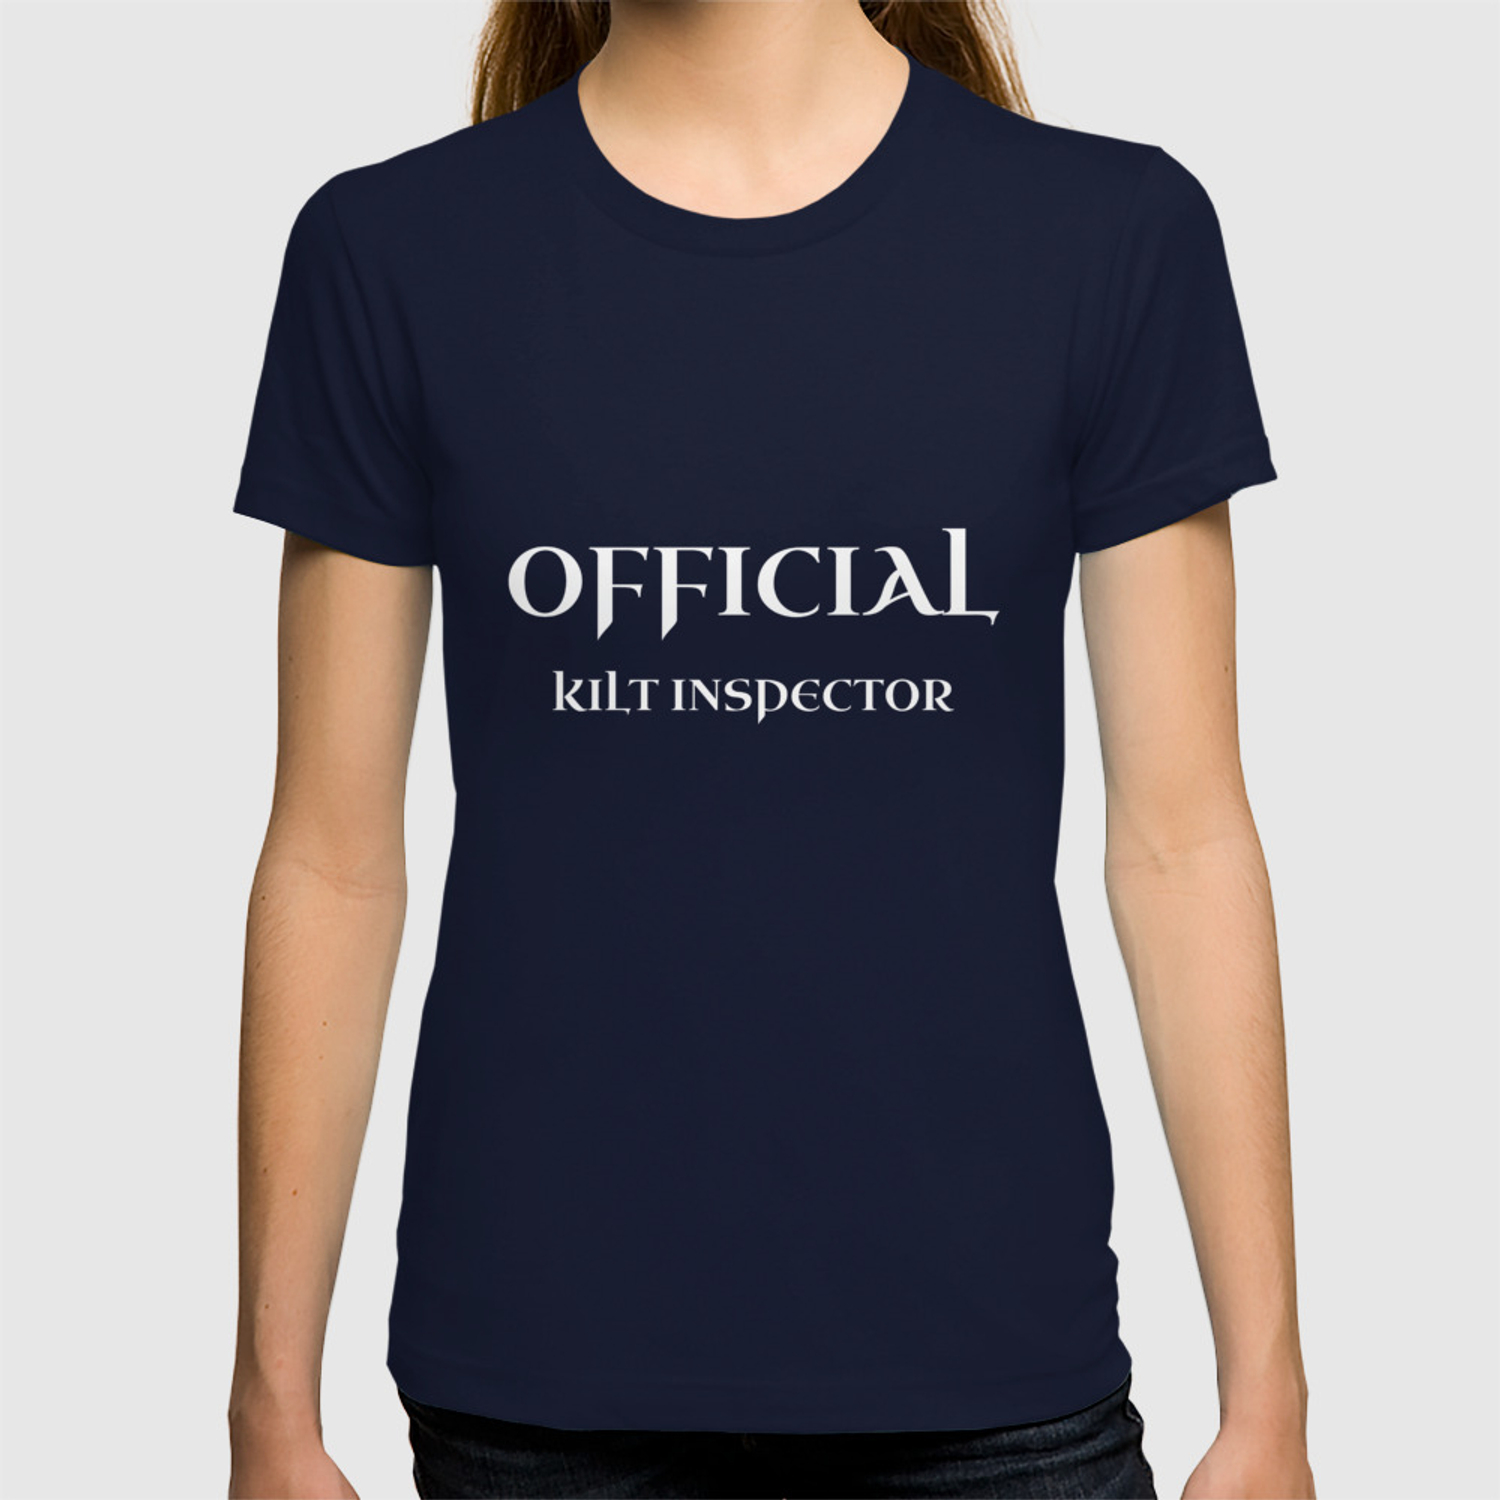 bcc31d43 Funny Scotland Official Kilt Inspector TShirt T-shirt by noirty | Society6